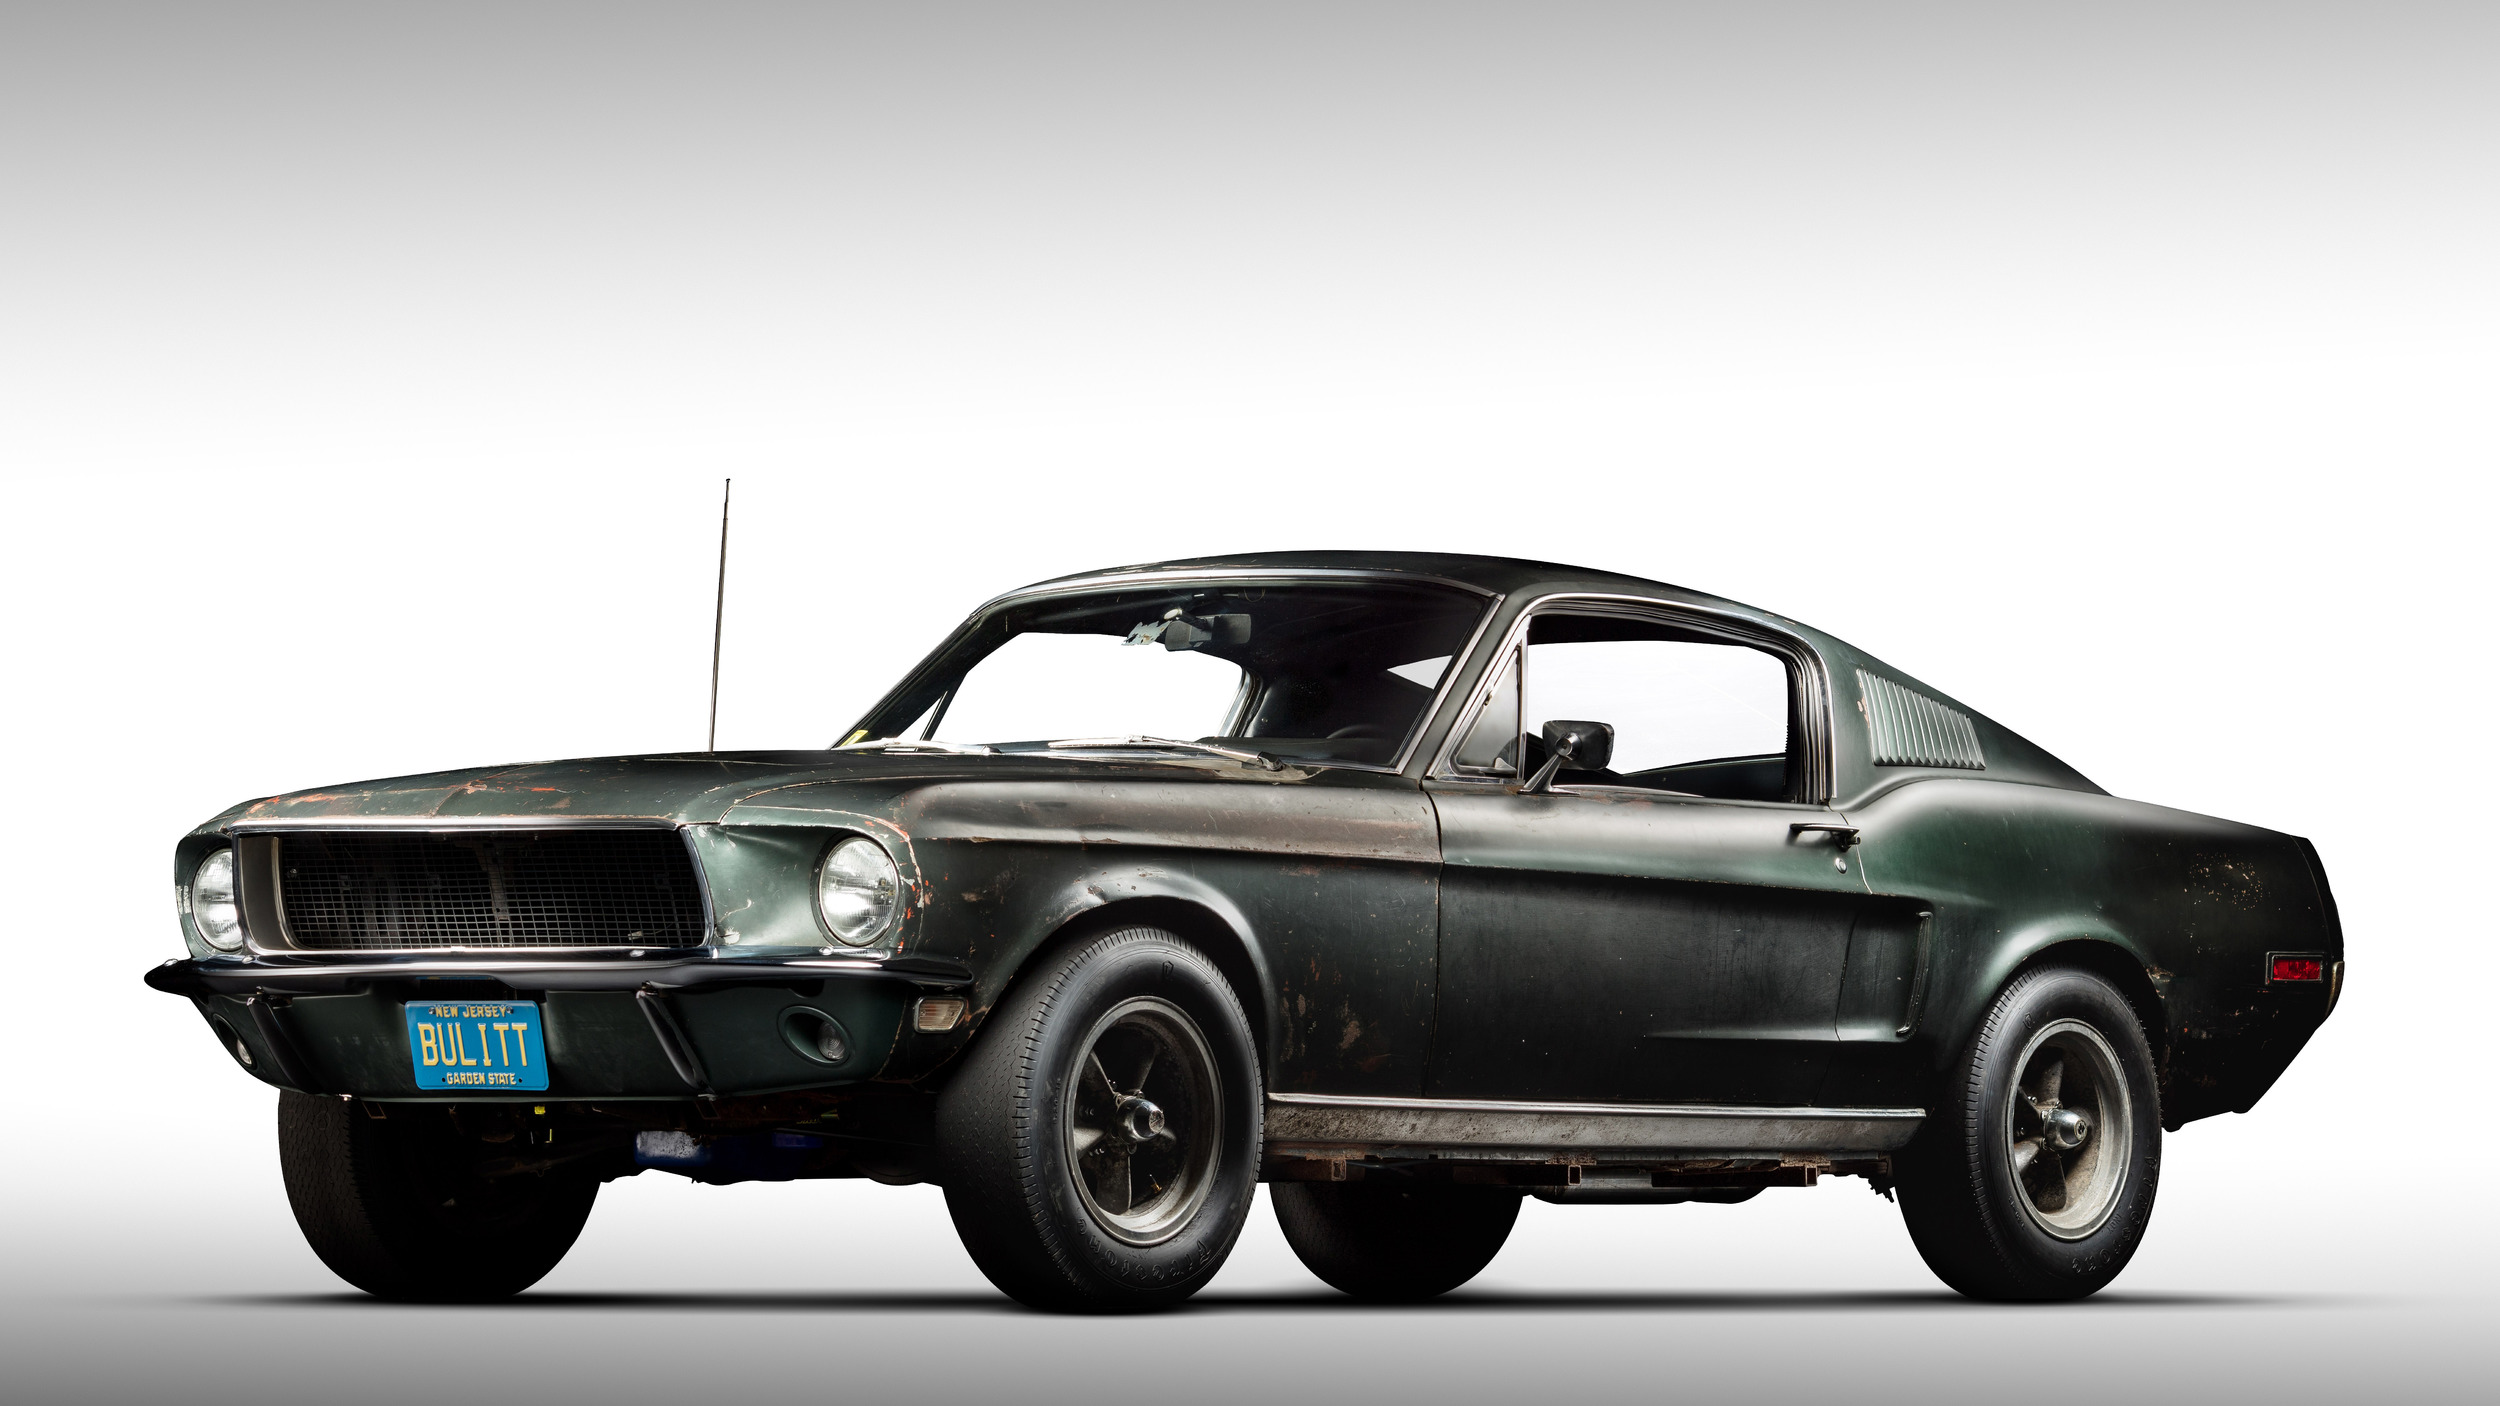 original-1968-mustang-from-movie-bullitt-1-1